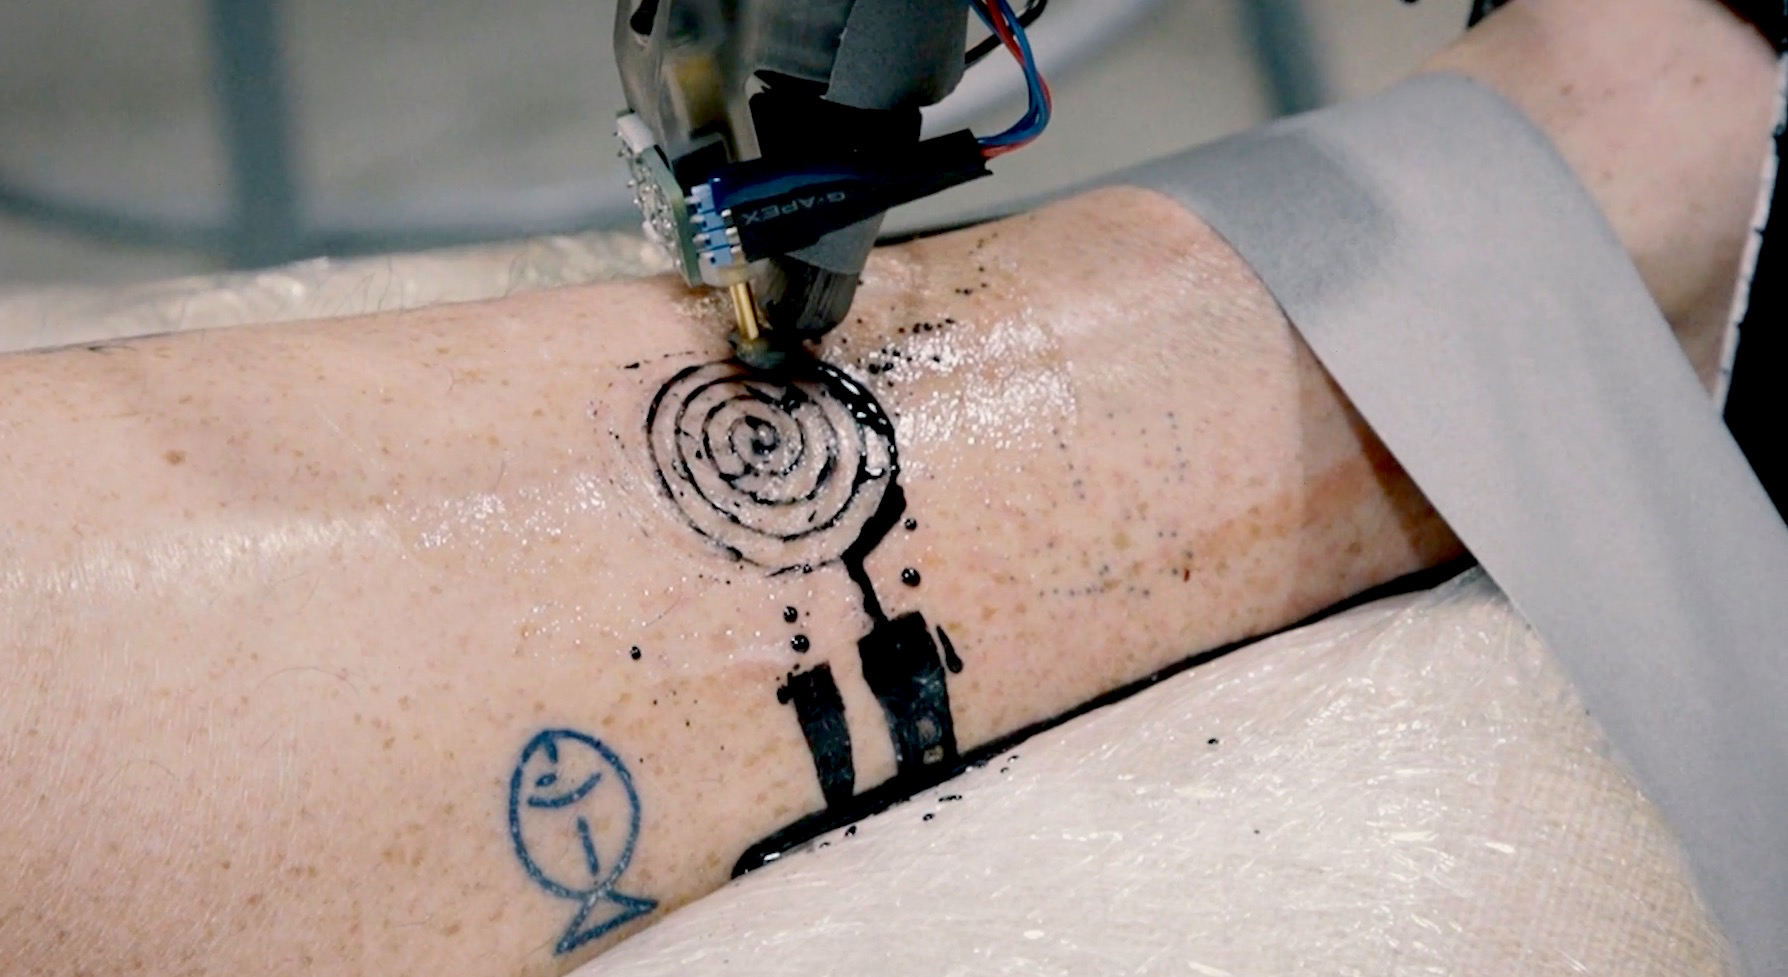 Video: Getting a tattoo from an industrial robot looks intense (Tomorrow Daily 404)